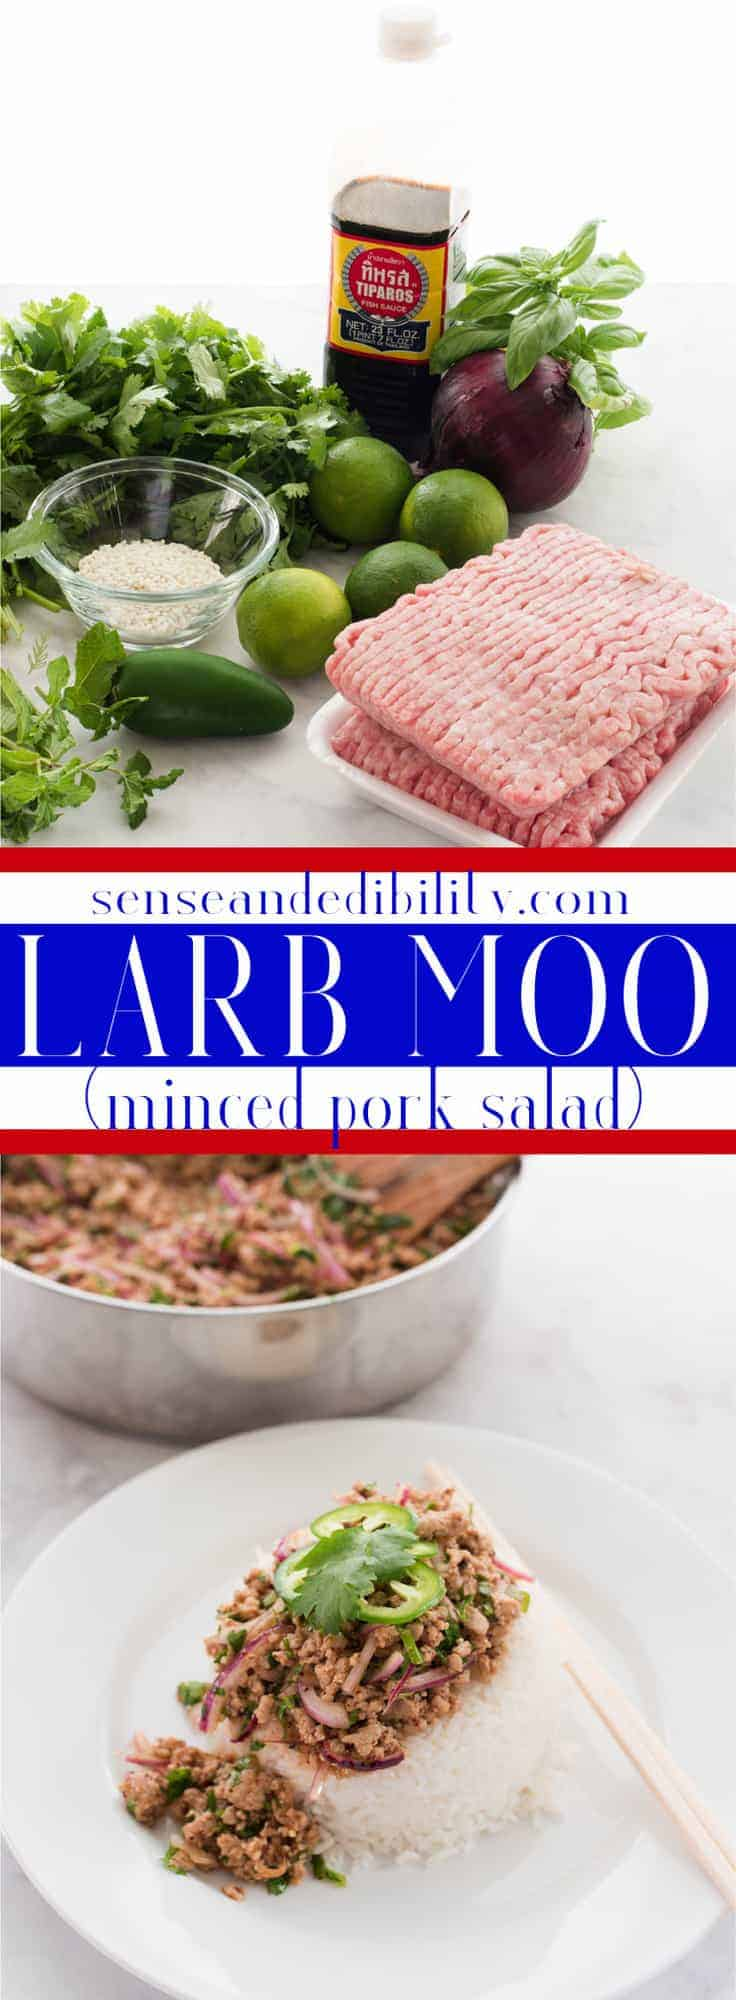 Larb Moo is an easy-to-make Laotian minced meat salad. Bright and refreshing flavors are spiced with kiss of pepper. #larbmoo #groundpork #laotian #thai #vietnamese #cambodian #easytomake #quickdinner via @ediblesense